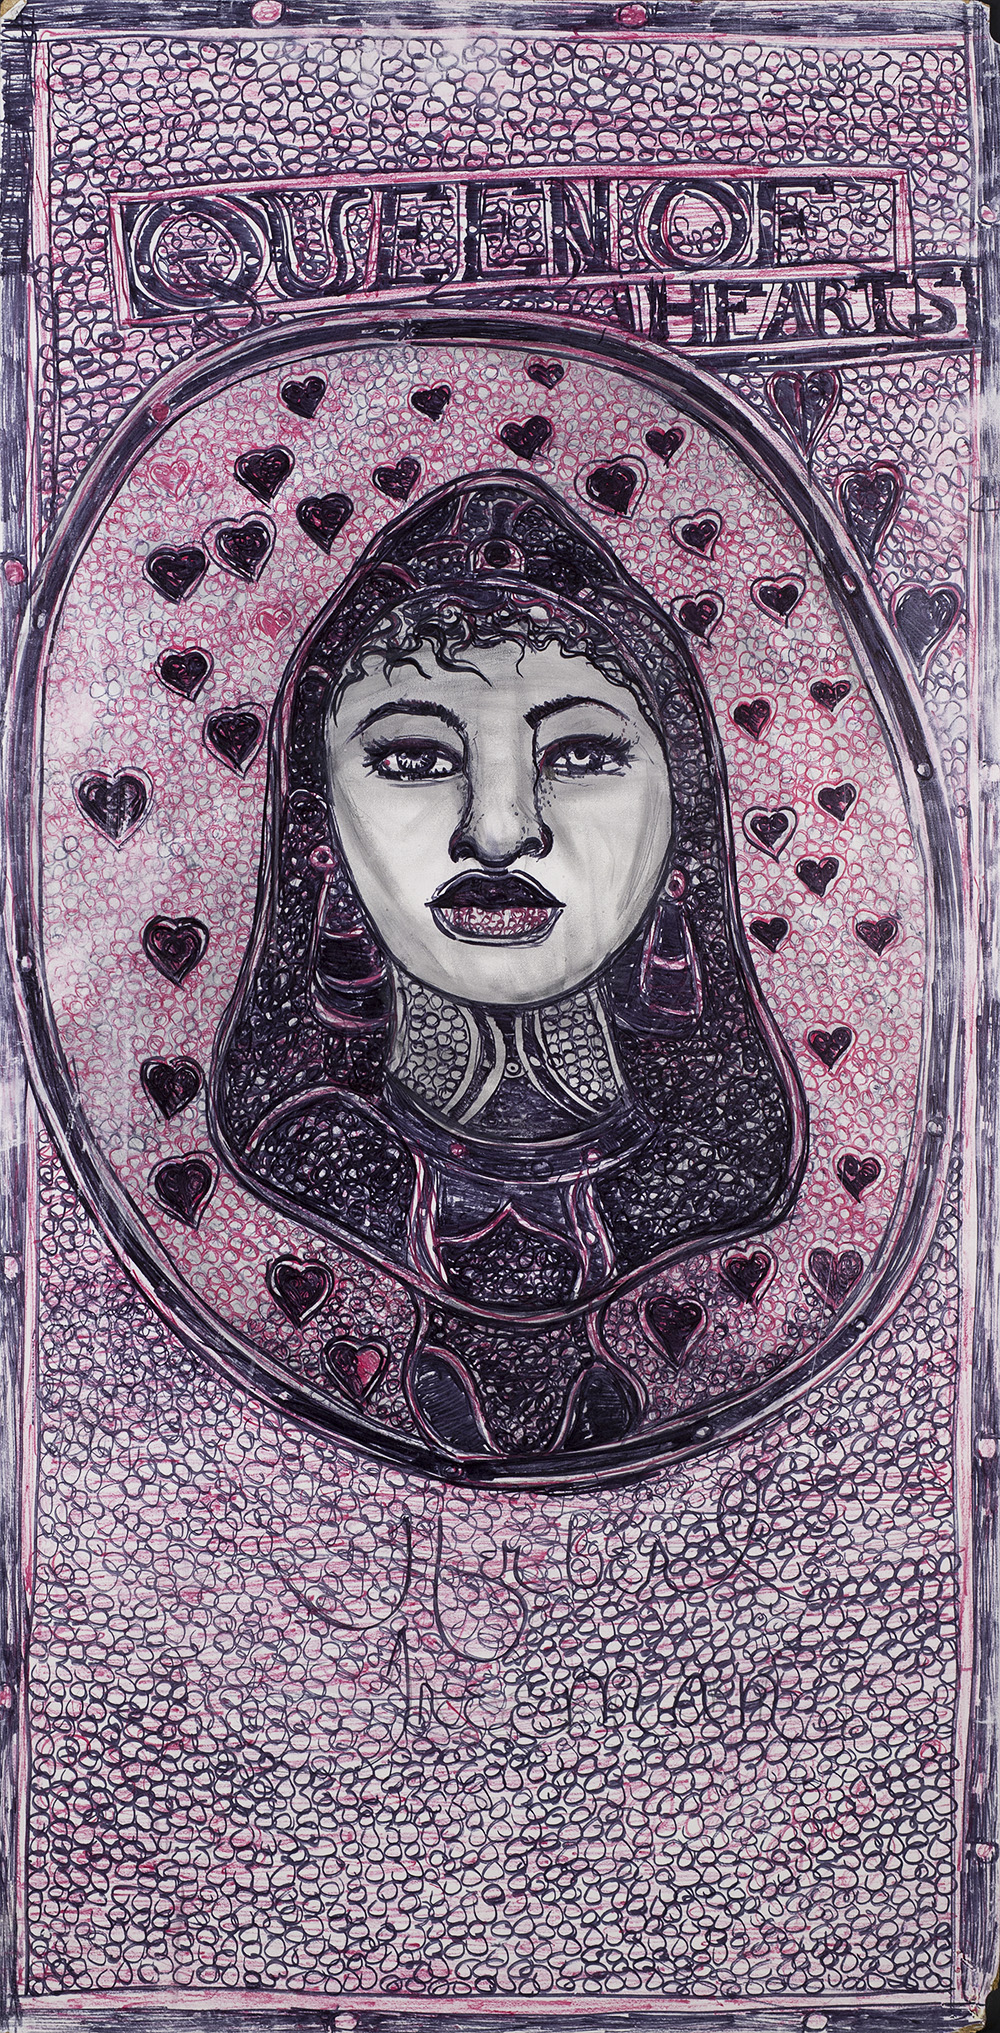 Herbert Freeman    Queen of Hearts  , 2015 Colored pencil and graphite on board 33 x 16.5 inches 83.8 x 41.9 cm HFr 43